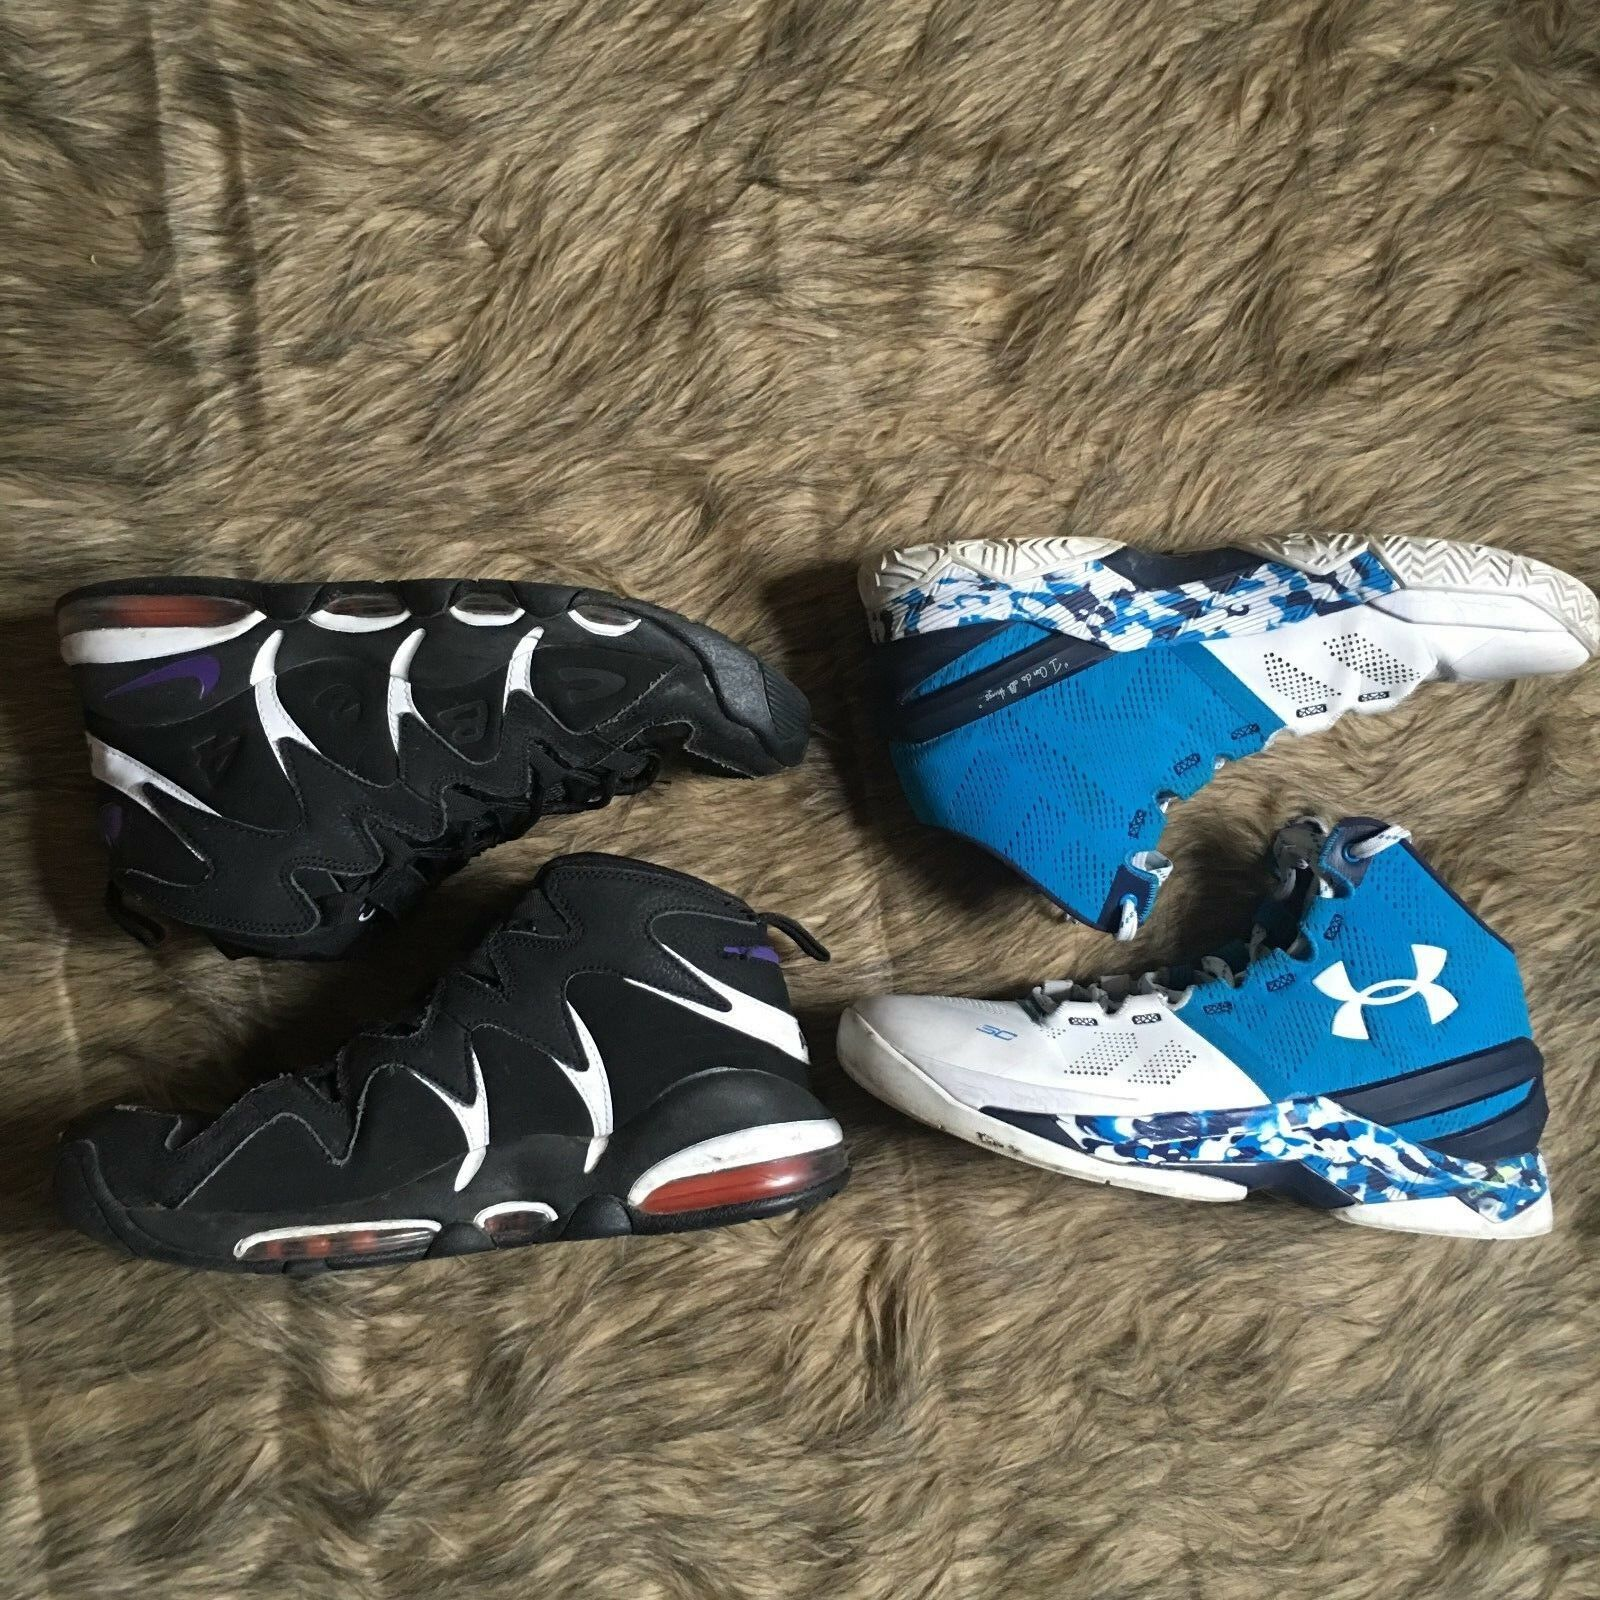 Nike Air Men's 414243-002 Under Armor Basketball Shoes Lot of 2 Size 10